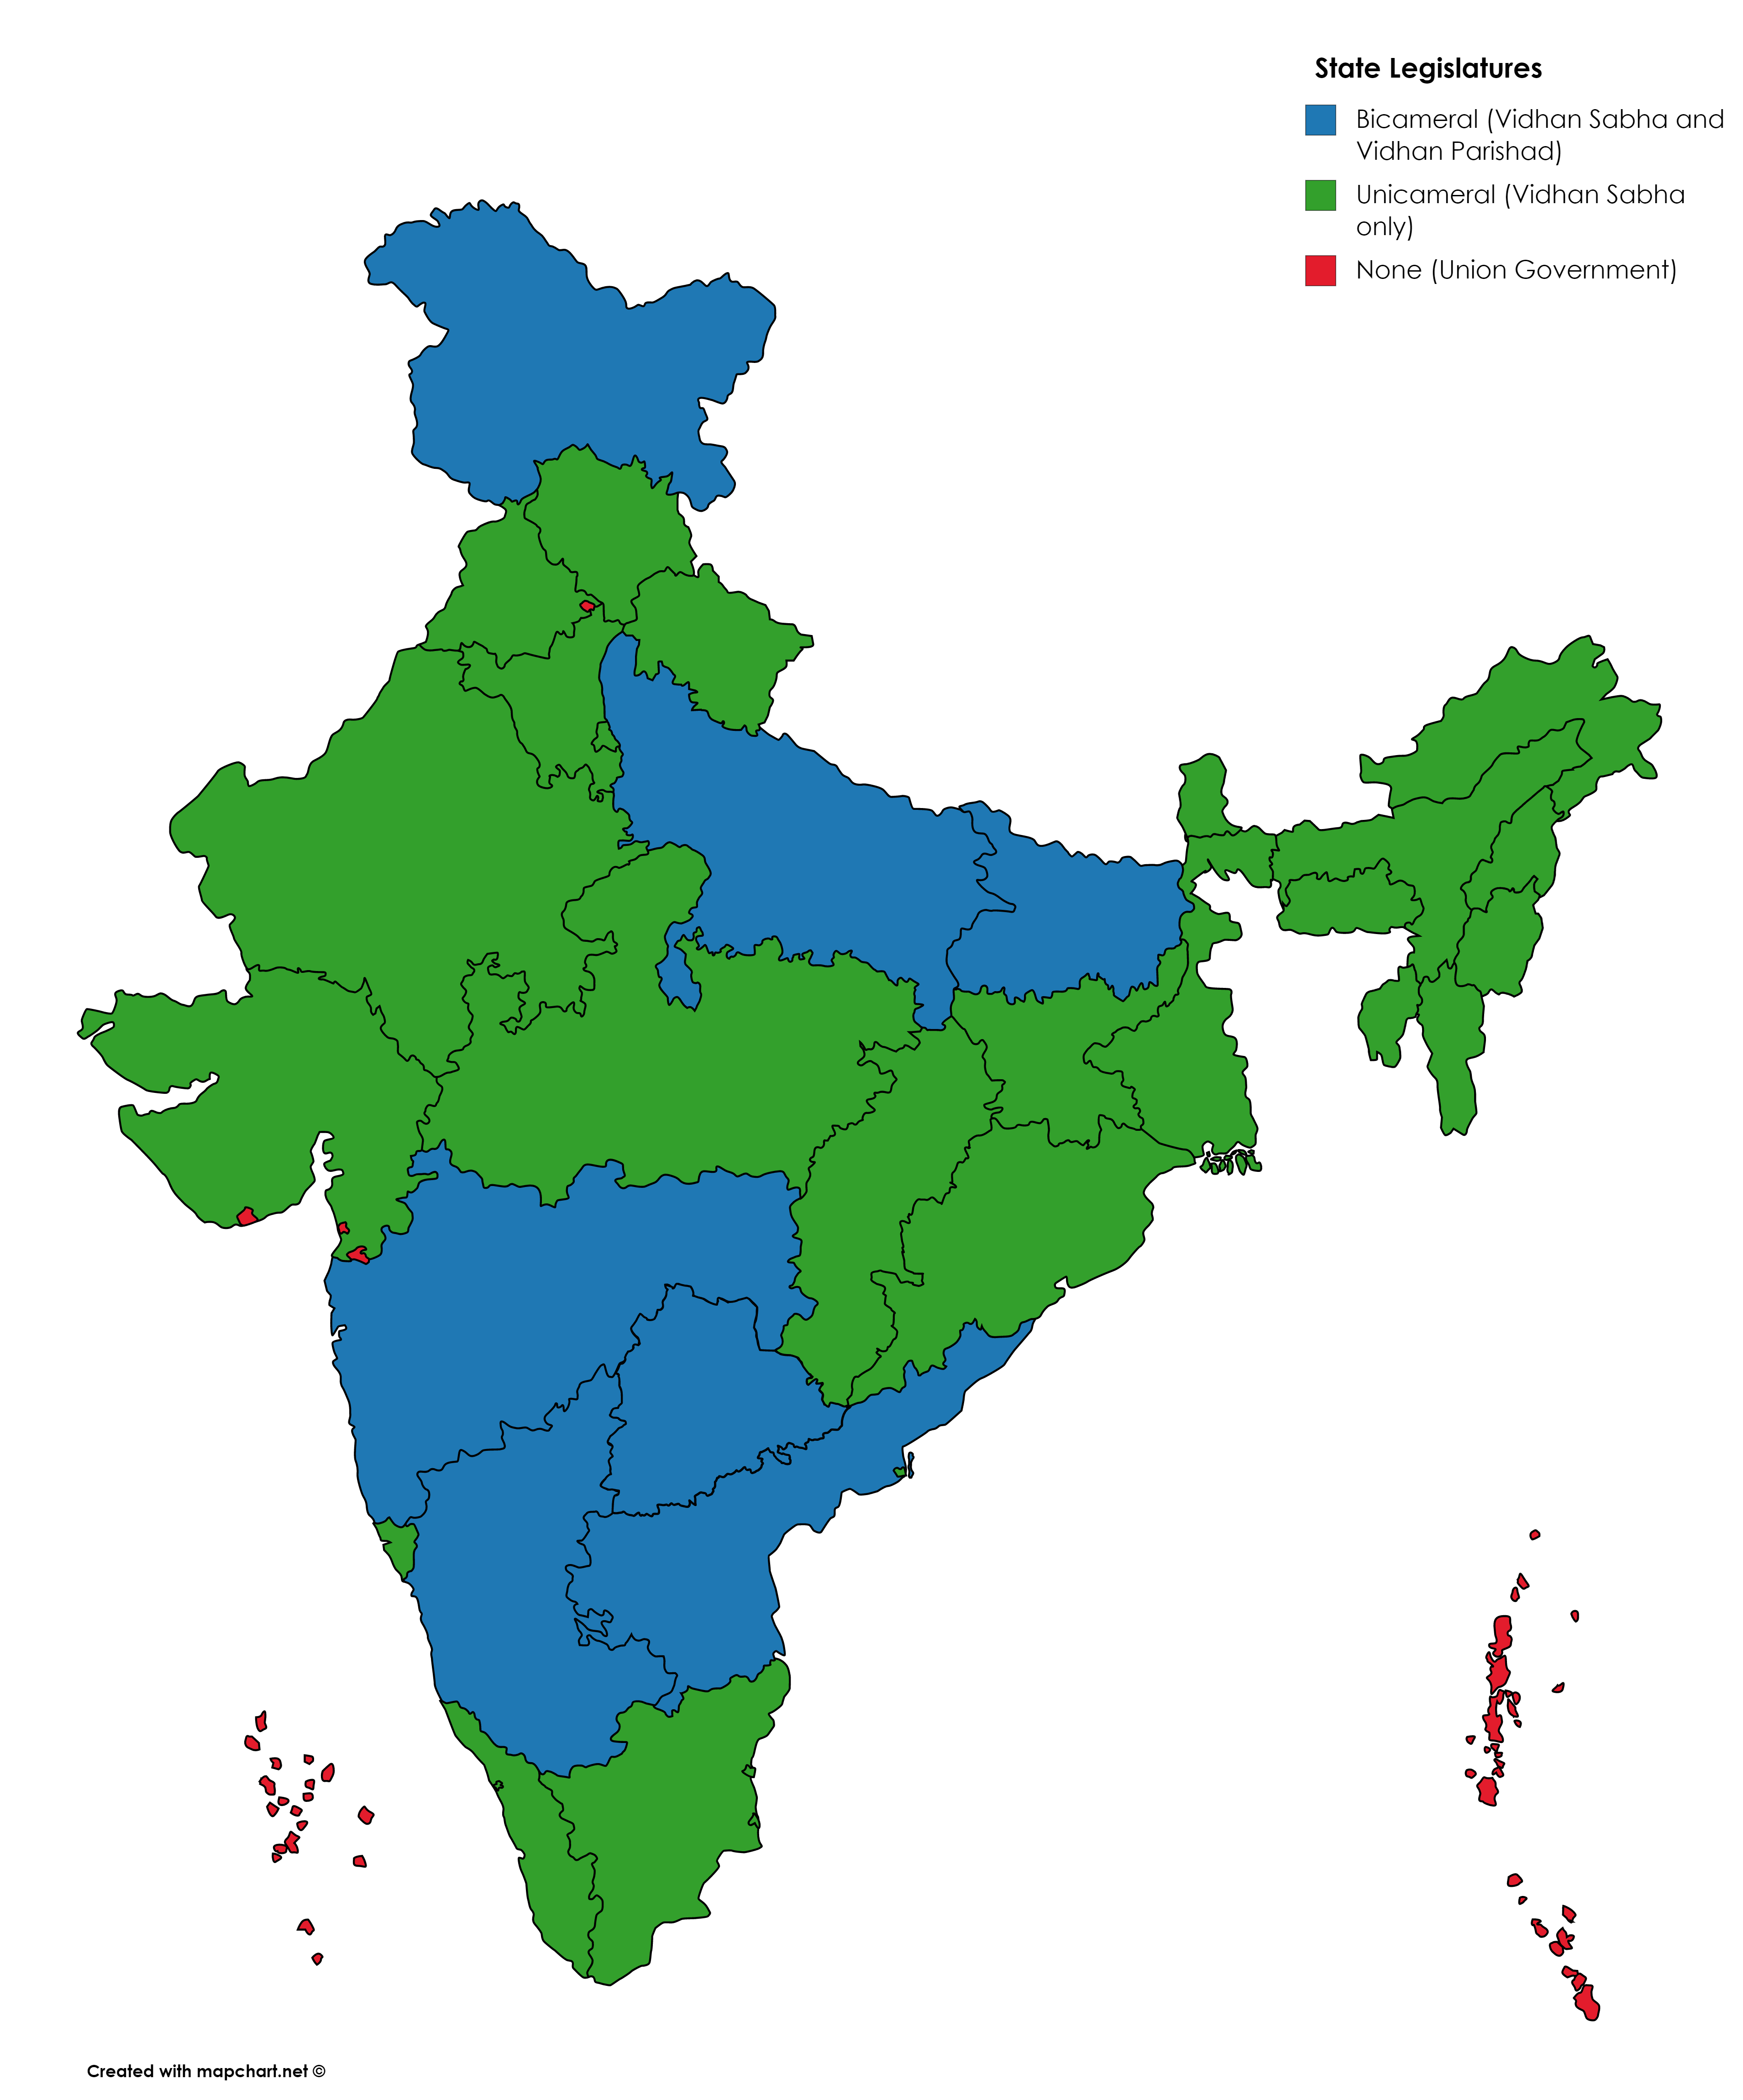 Indian states & UTs by State Legislature [3818x4600 ... on india bali map, india se, india map usa, india russia map, india on map, india yellow river map, india south asia, india continent map, india australia map, india heart map, india europe map, india region map, india population growth map, india in asia, mughal empire india map, tohoku japan earthquake 2011 map, india mongol empire map, india iran map, india and surrounding country map, africa map,